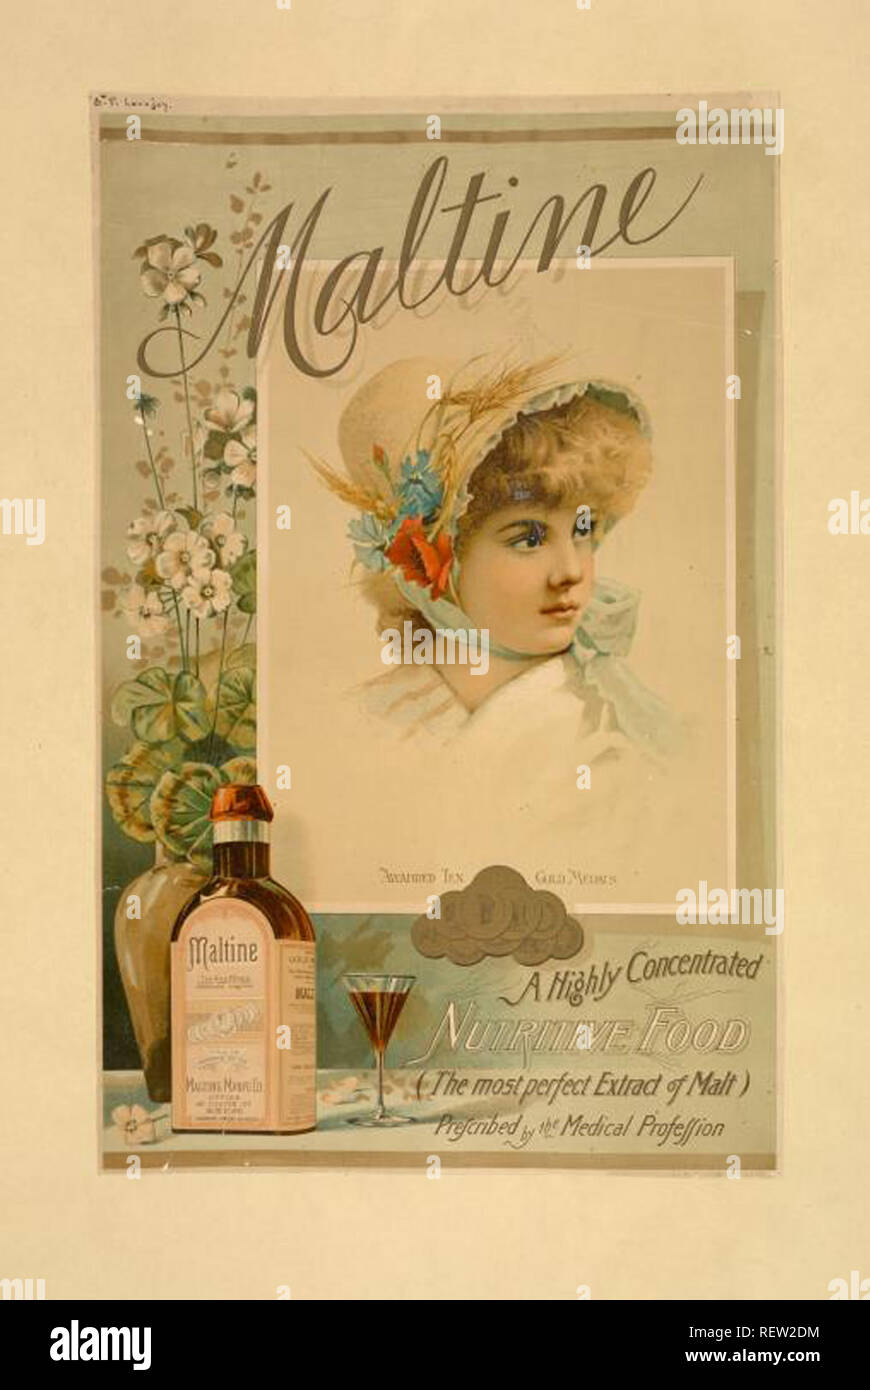 vintage magazine advertising and cover design - Stock Image